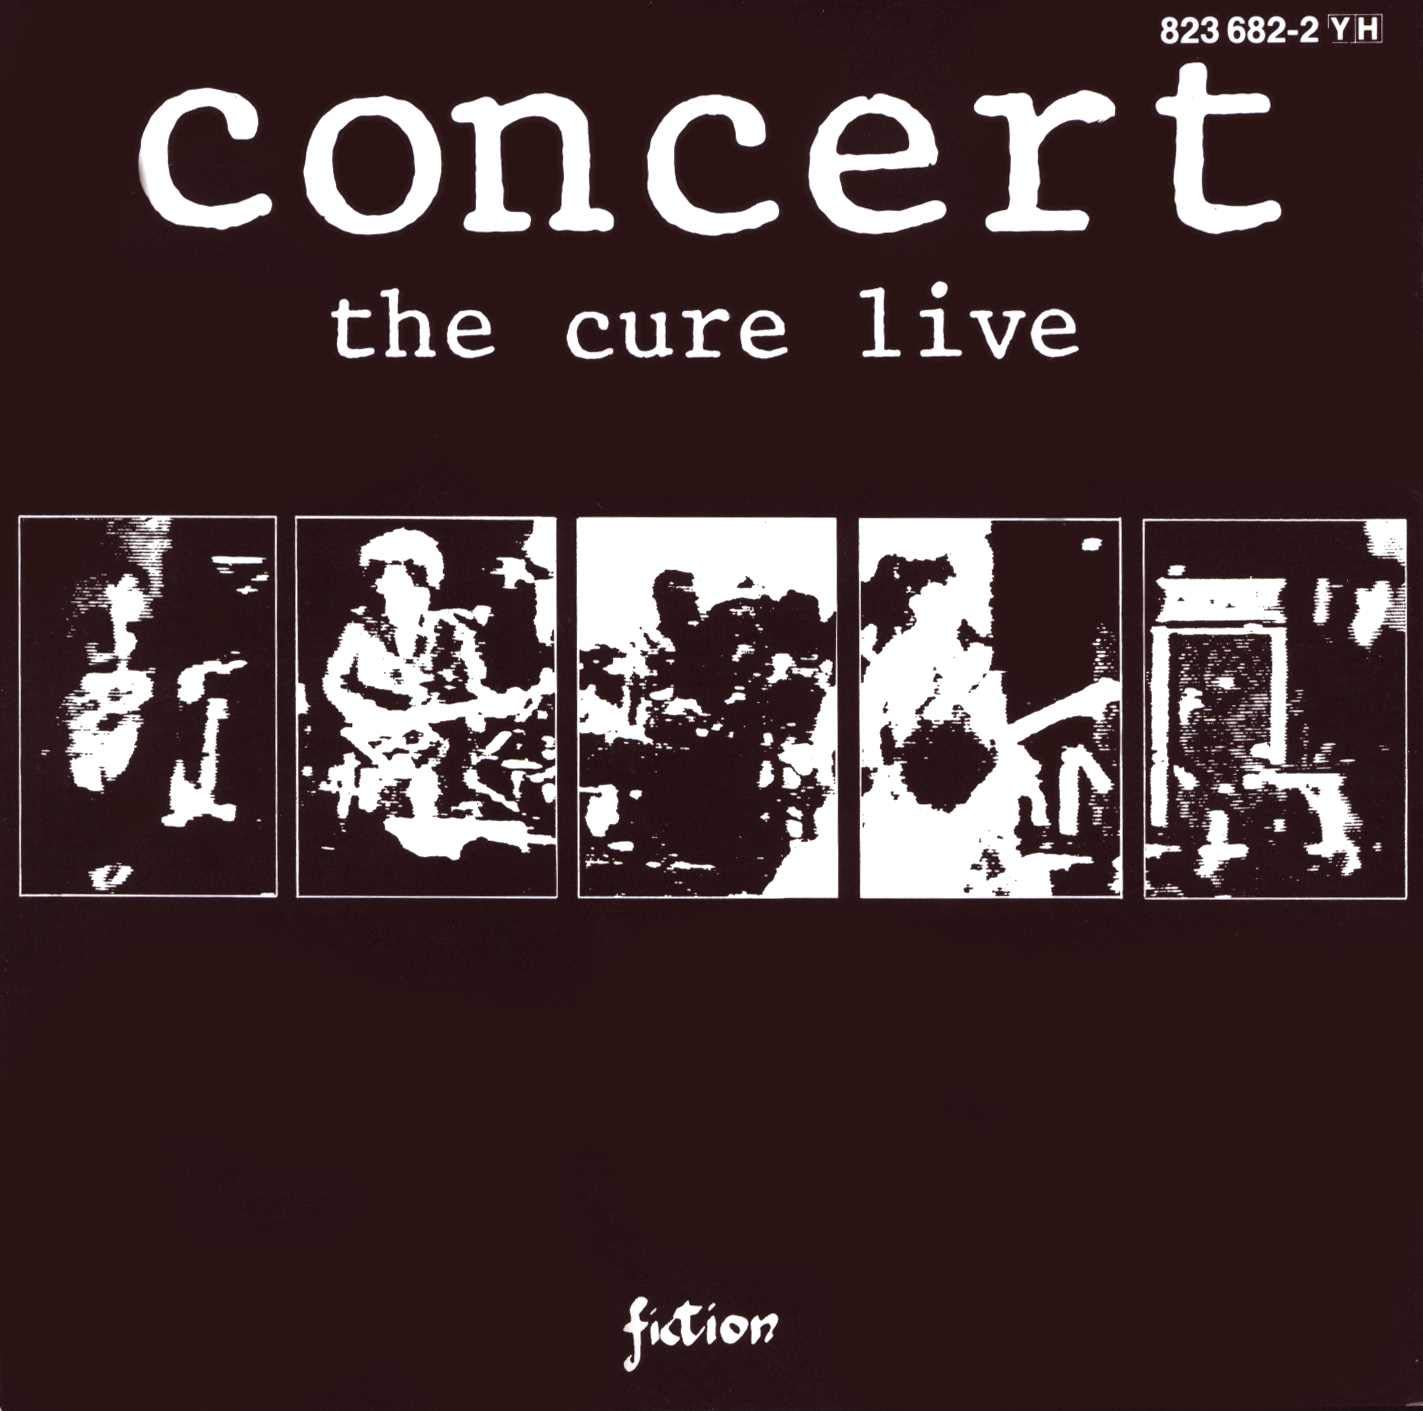 The Cure – Concert The Cure Live (1984) [FLAC]